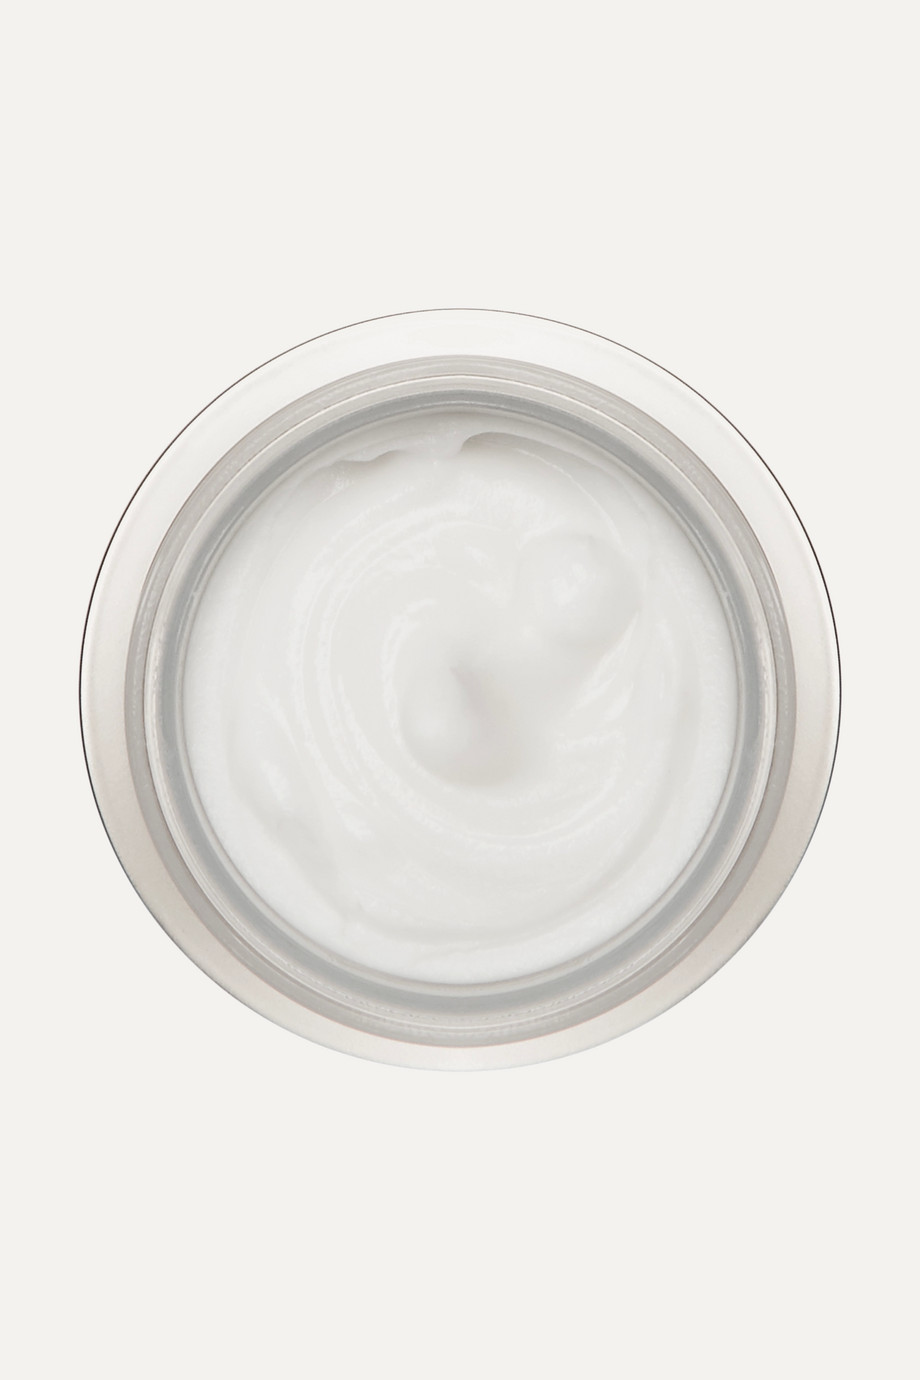 AMOREPACIFIC Youth Revolution Radiance Creme & Masque, 50ml